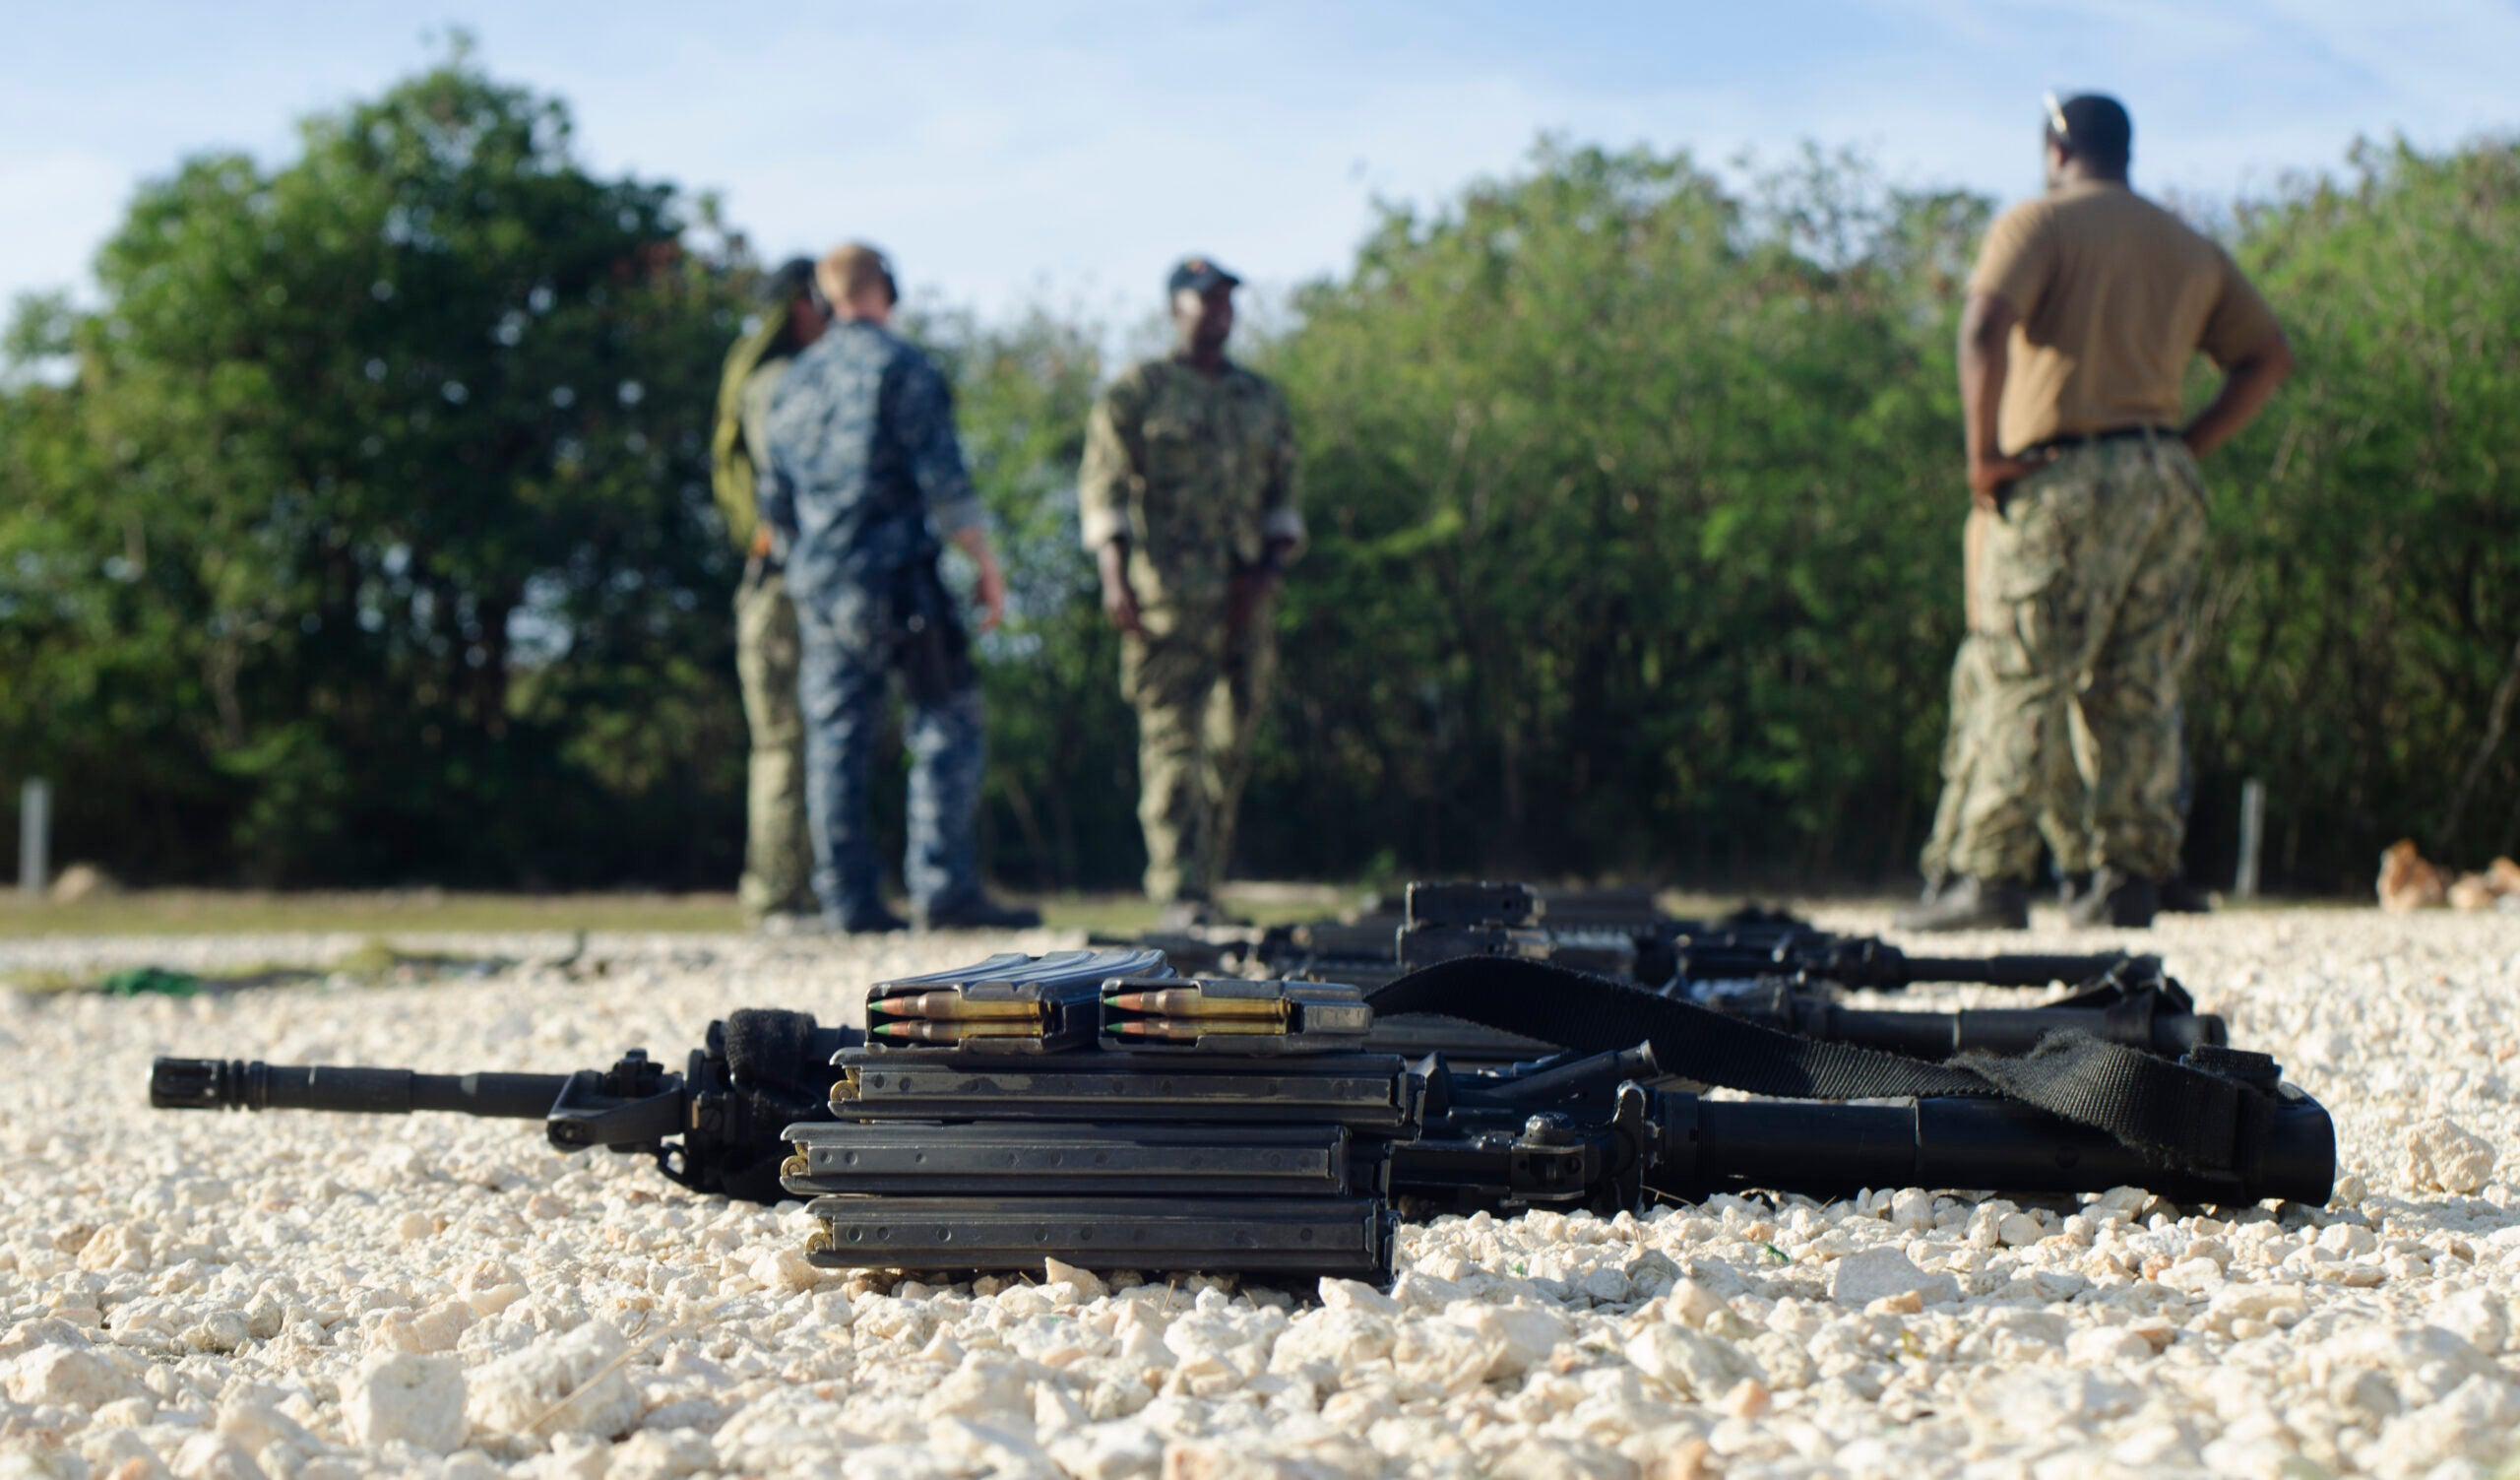 Does The Military Community Have a Responsibility to Gun Violence Victims?